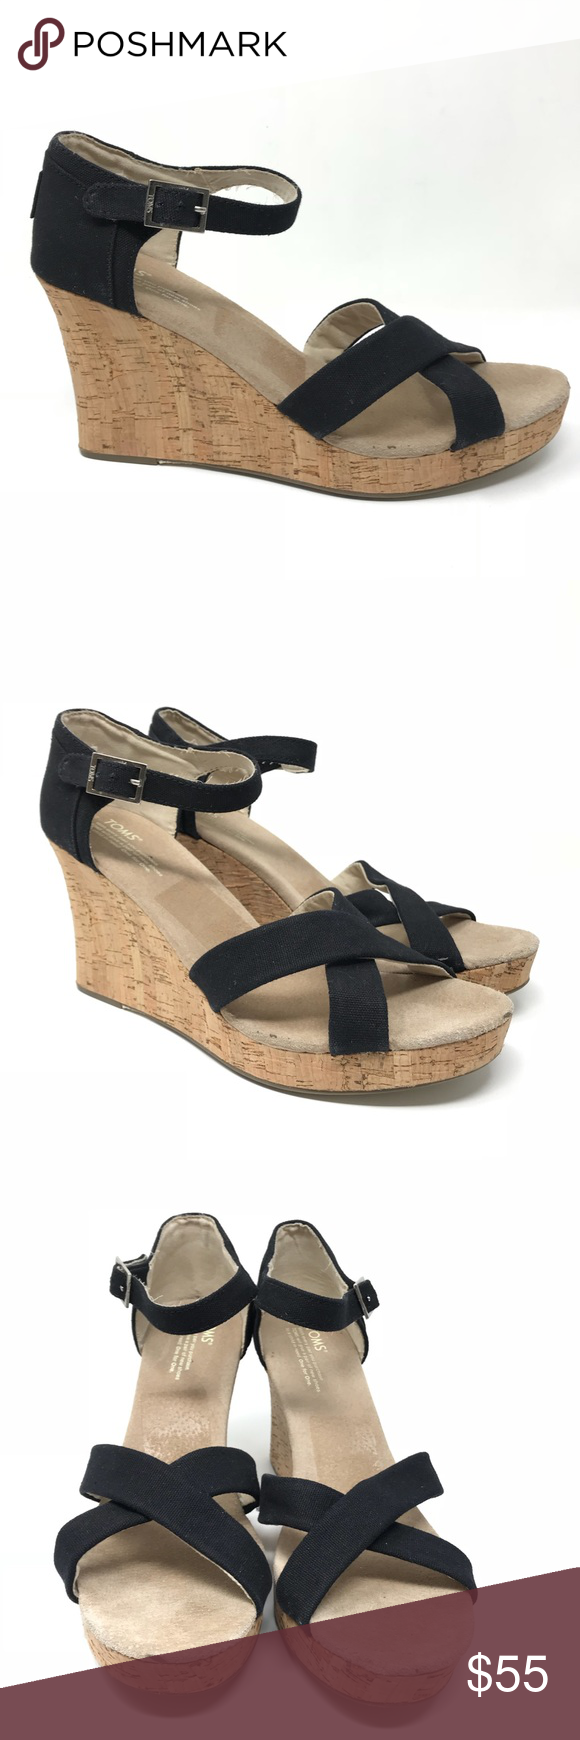 6e936767433173 Toms Sz 12 Strappy Wedge Sandals Black Cork Canvas Toms Women s Size 12  Canvas   Cork Strappy Wedge Sandals Black NEW Brand new without box